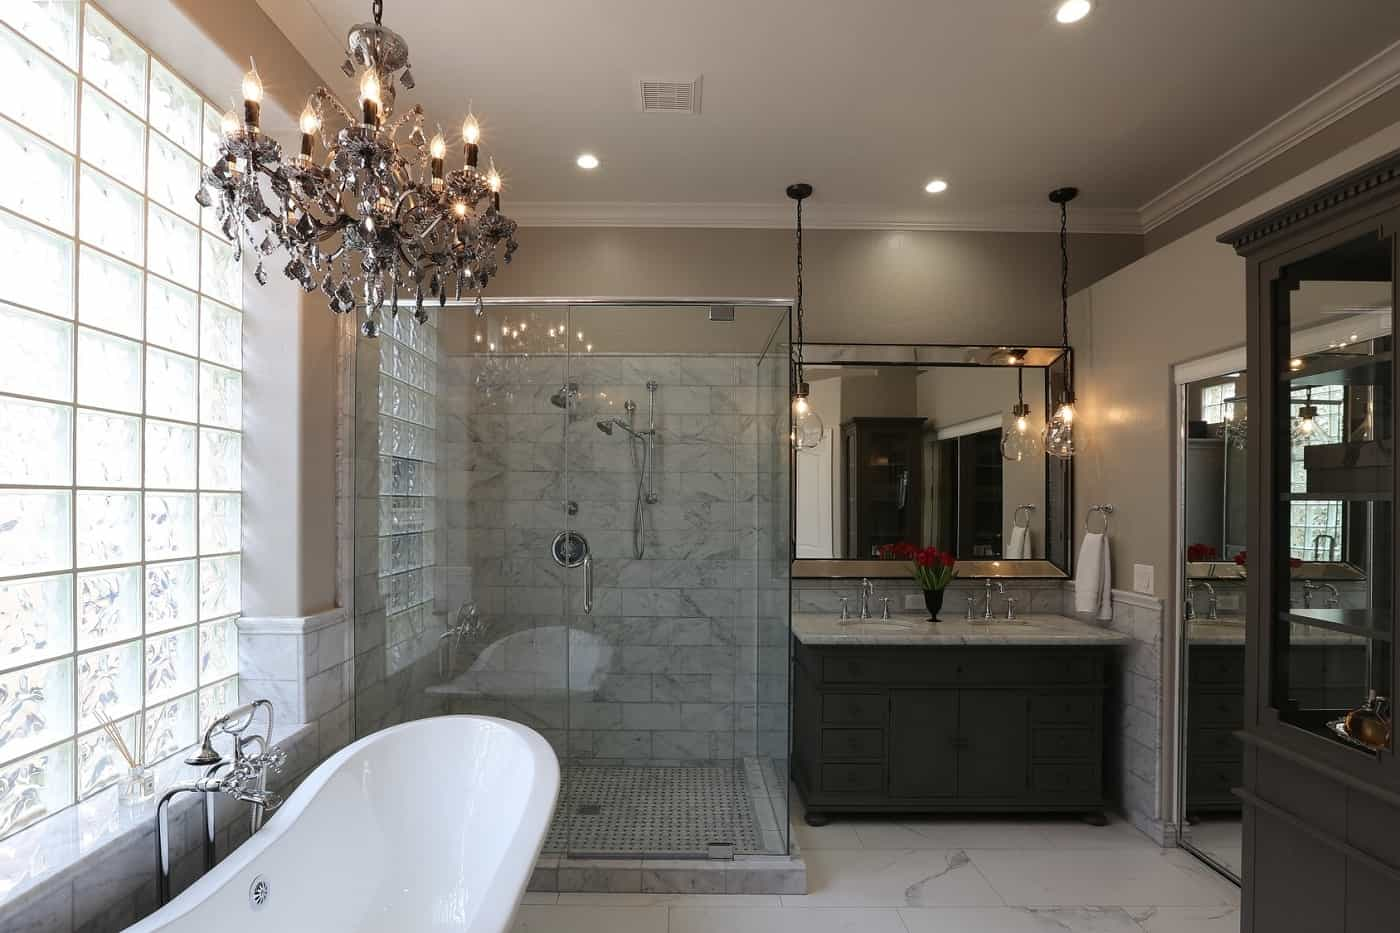 Classical style bathroom with bathtub after renovation